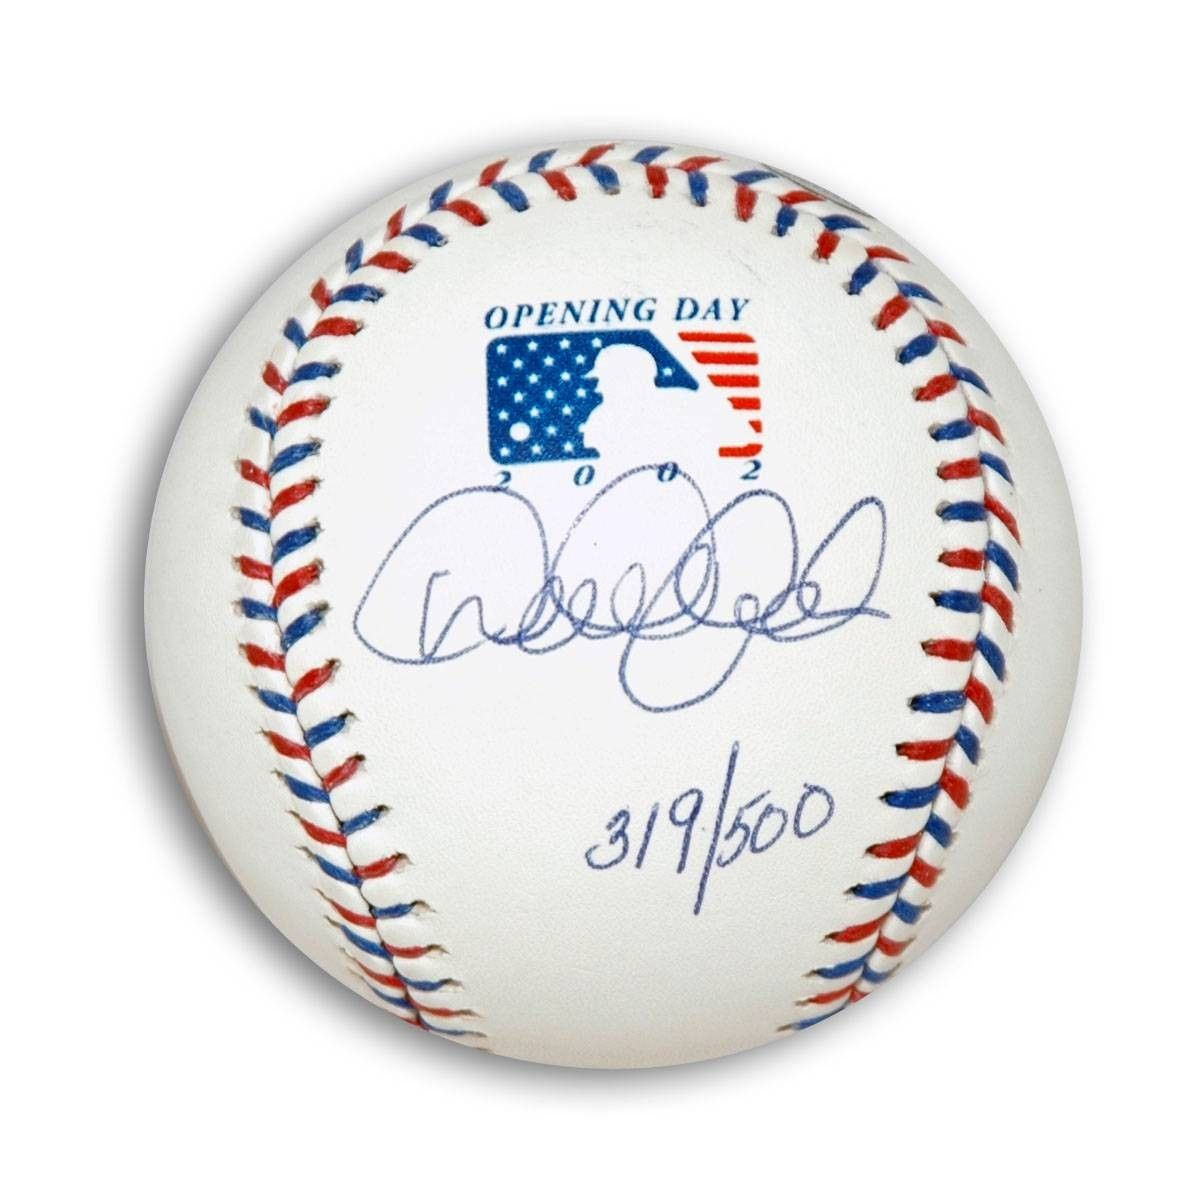 AAA Sports Memorabilia LLC - Derek Jeter Autographed MLB 2002 Opening Day Baseball. This ball is Serial Numbered 319/500. This item comes with Steiner and MLB COAs., $742.95 (http://www.aaasportsmemorabilia.com/mlb/new-york-yankees/derek-jeter-autographed-mlb-2002-opening-day-baseball-this-ball-is-serial-numbered-319-500-this-item-comes-with-steiner-and-mlb-coas/)